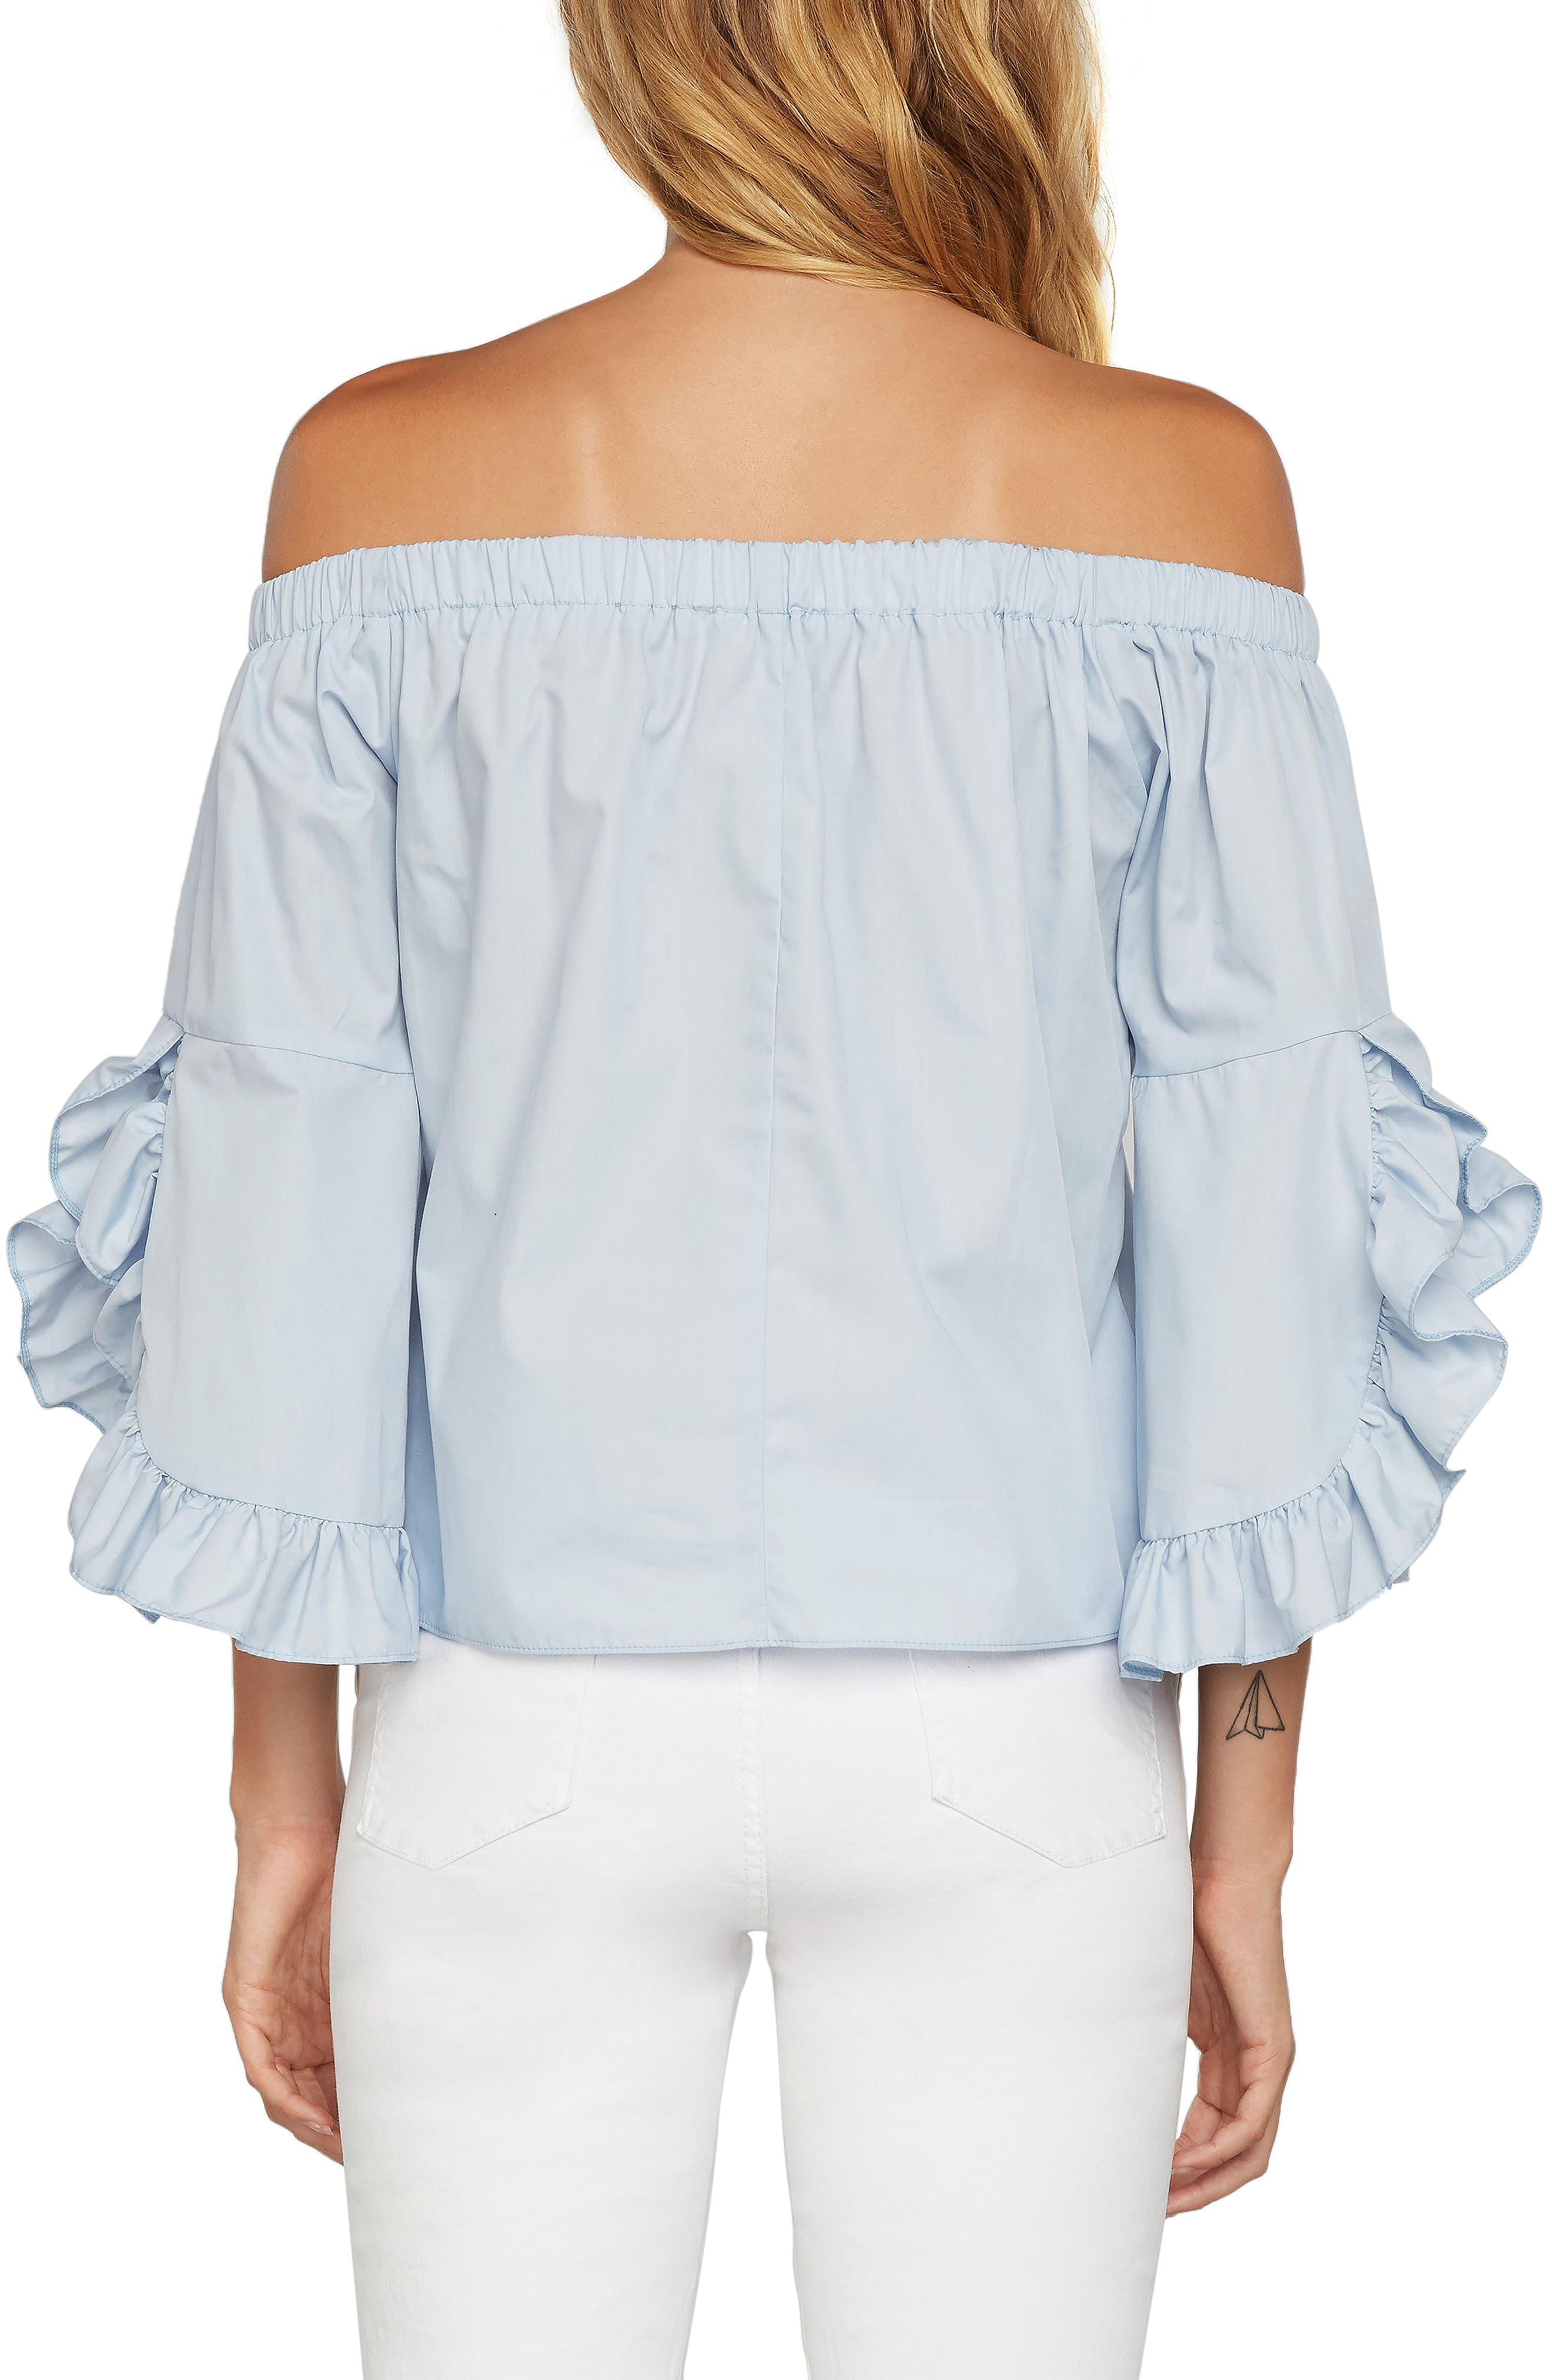 Miley Off the Shoulder Top,                             Alternate thumbnail 2, color,                             Periwinkle